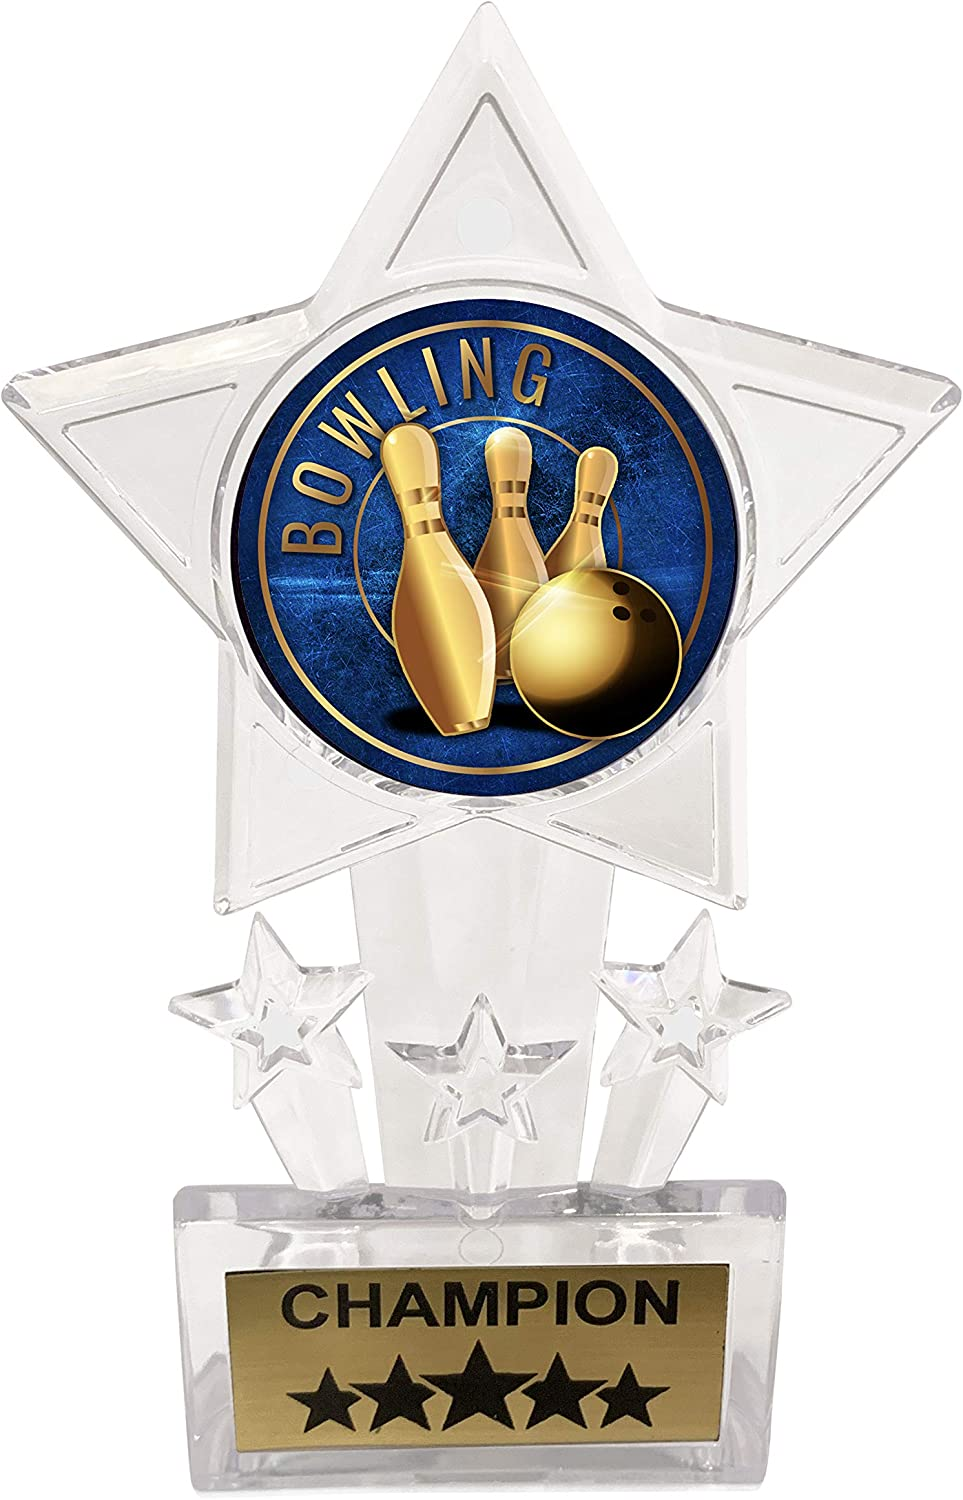 Pack of 12 Express Medals 6.5 Inch Clear Acrylic Star Bowling Champion Trophy Awards